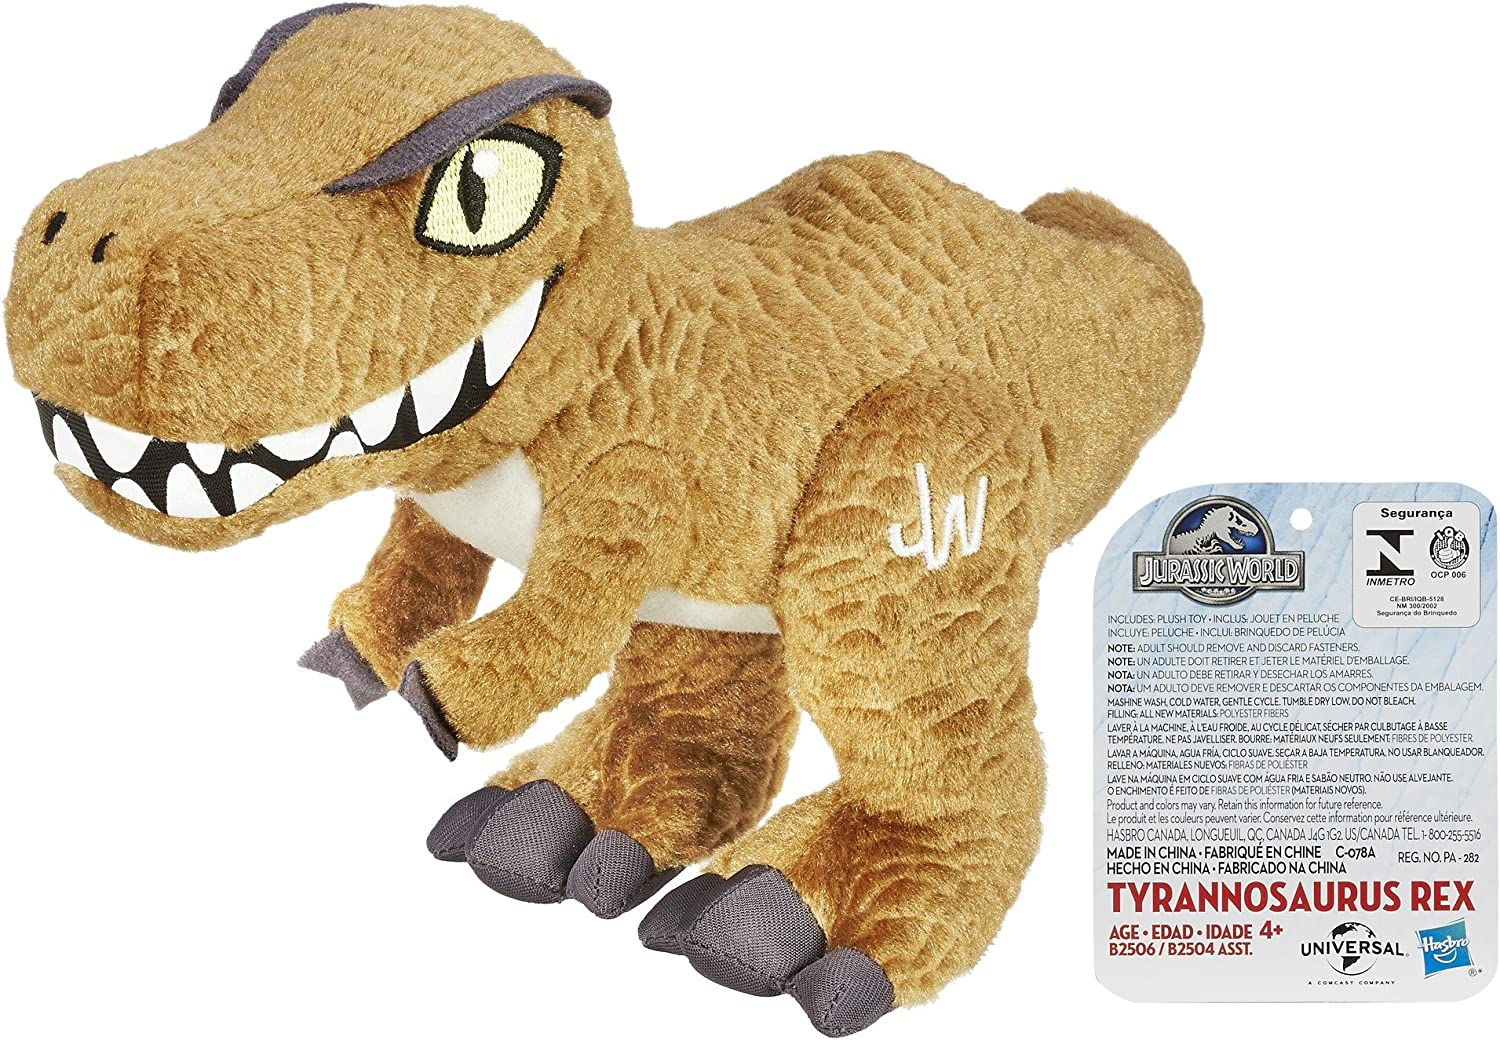 Aurora Monkey Stuffed Animal, Amazon Com Jurassic World Plush Tyrannosaurus Rex Toy Toys Games